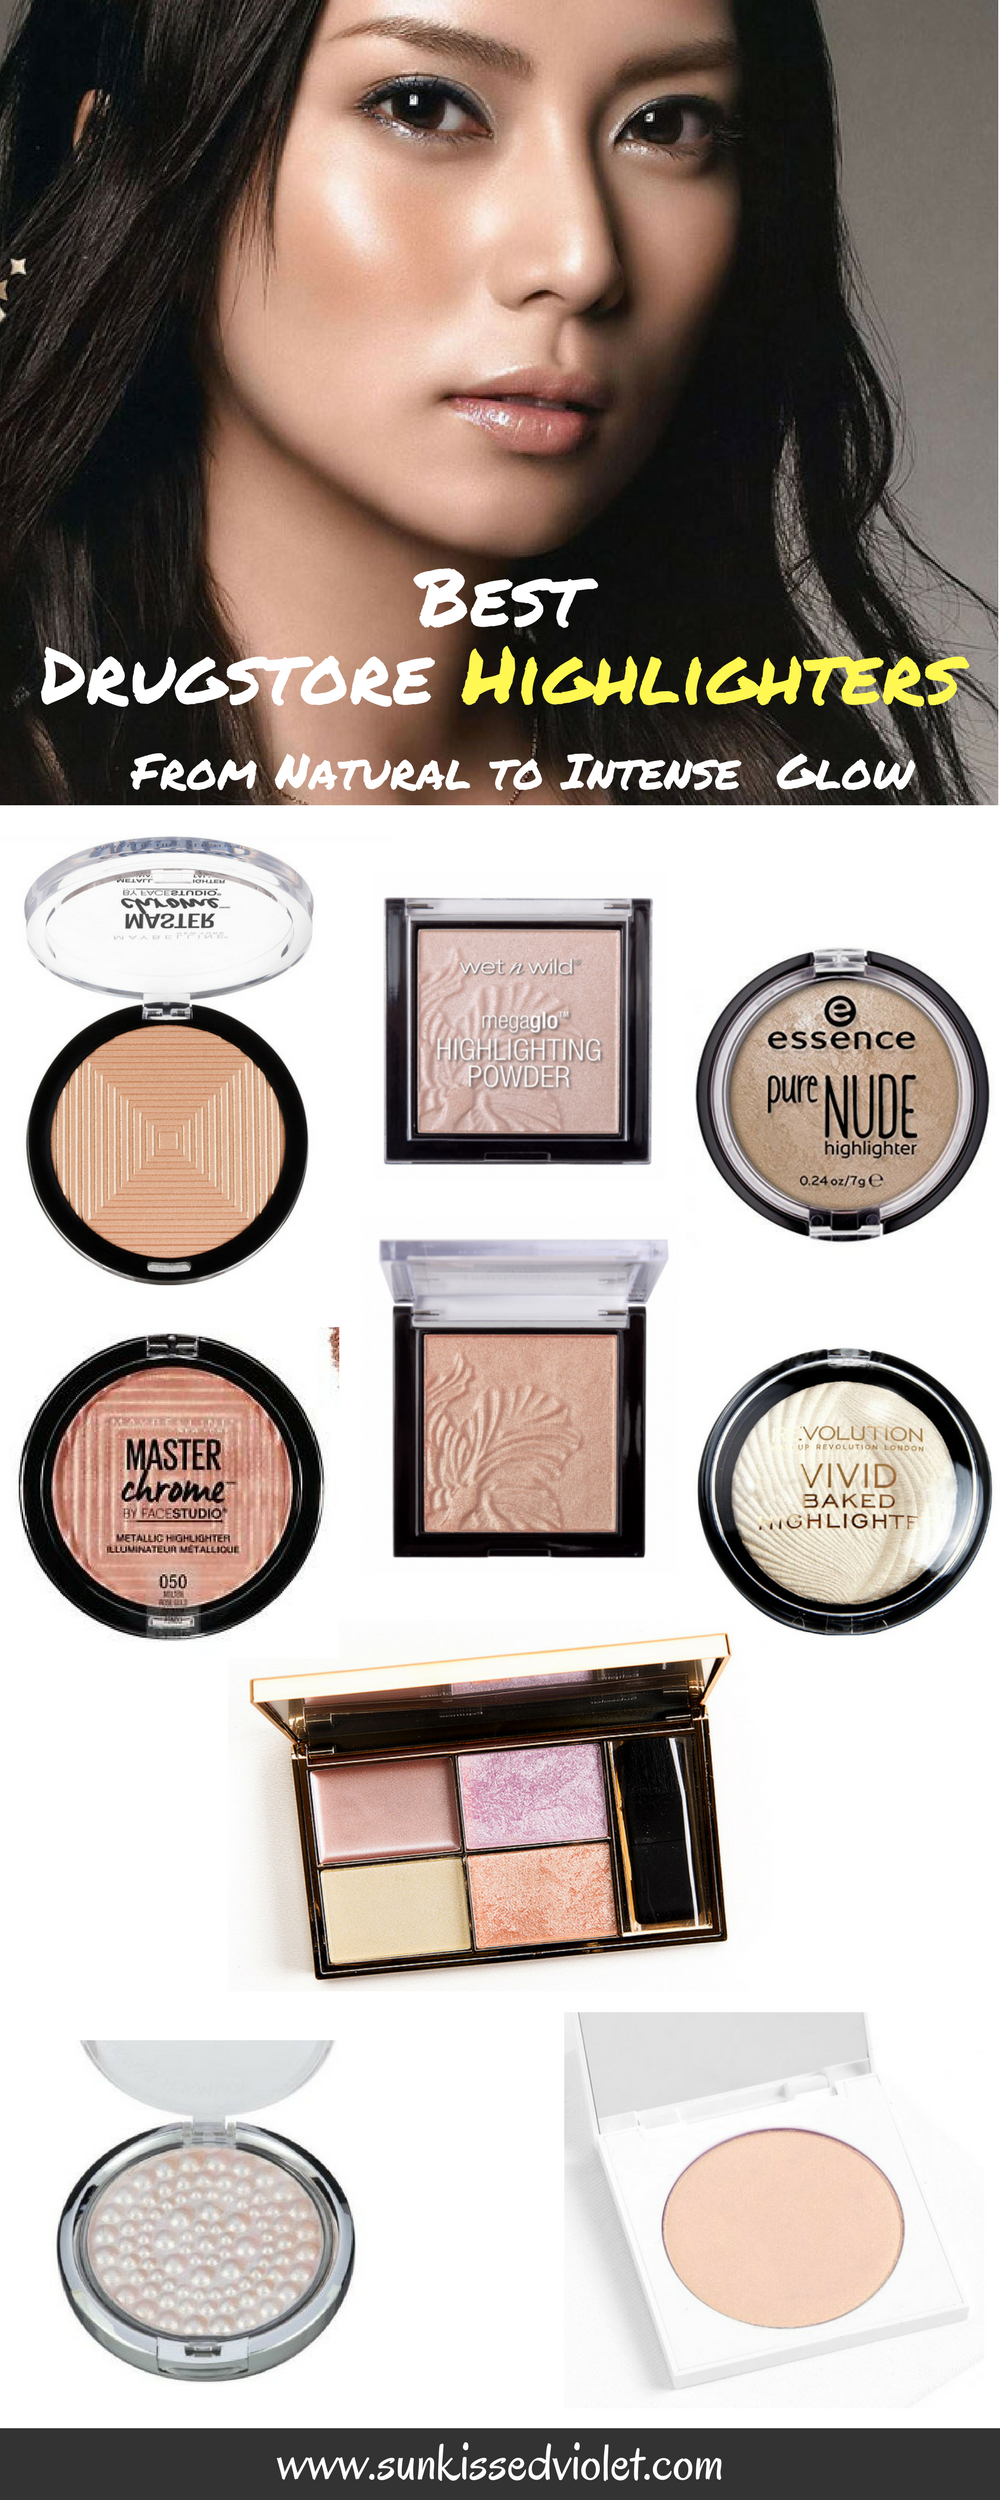 Best Drugstore Highlighters For An Instant Glow Swatches Review Sun Kissed Violet Best Drug Store Highlighter Drugstore Highlighter Highlighter Makeup